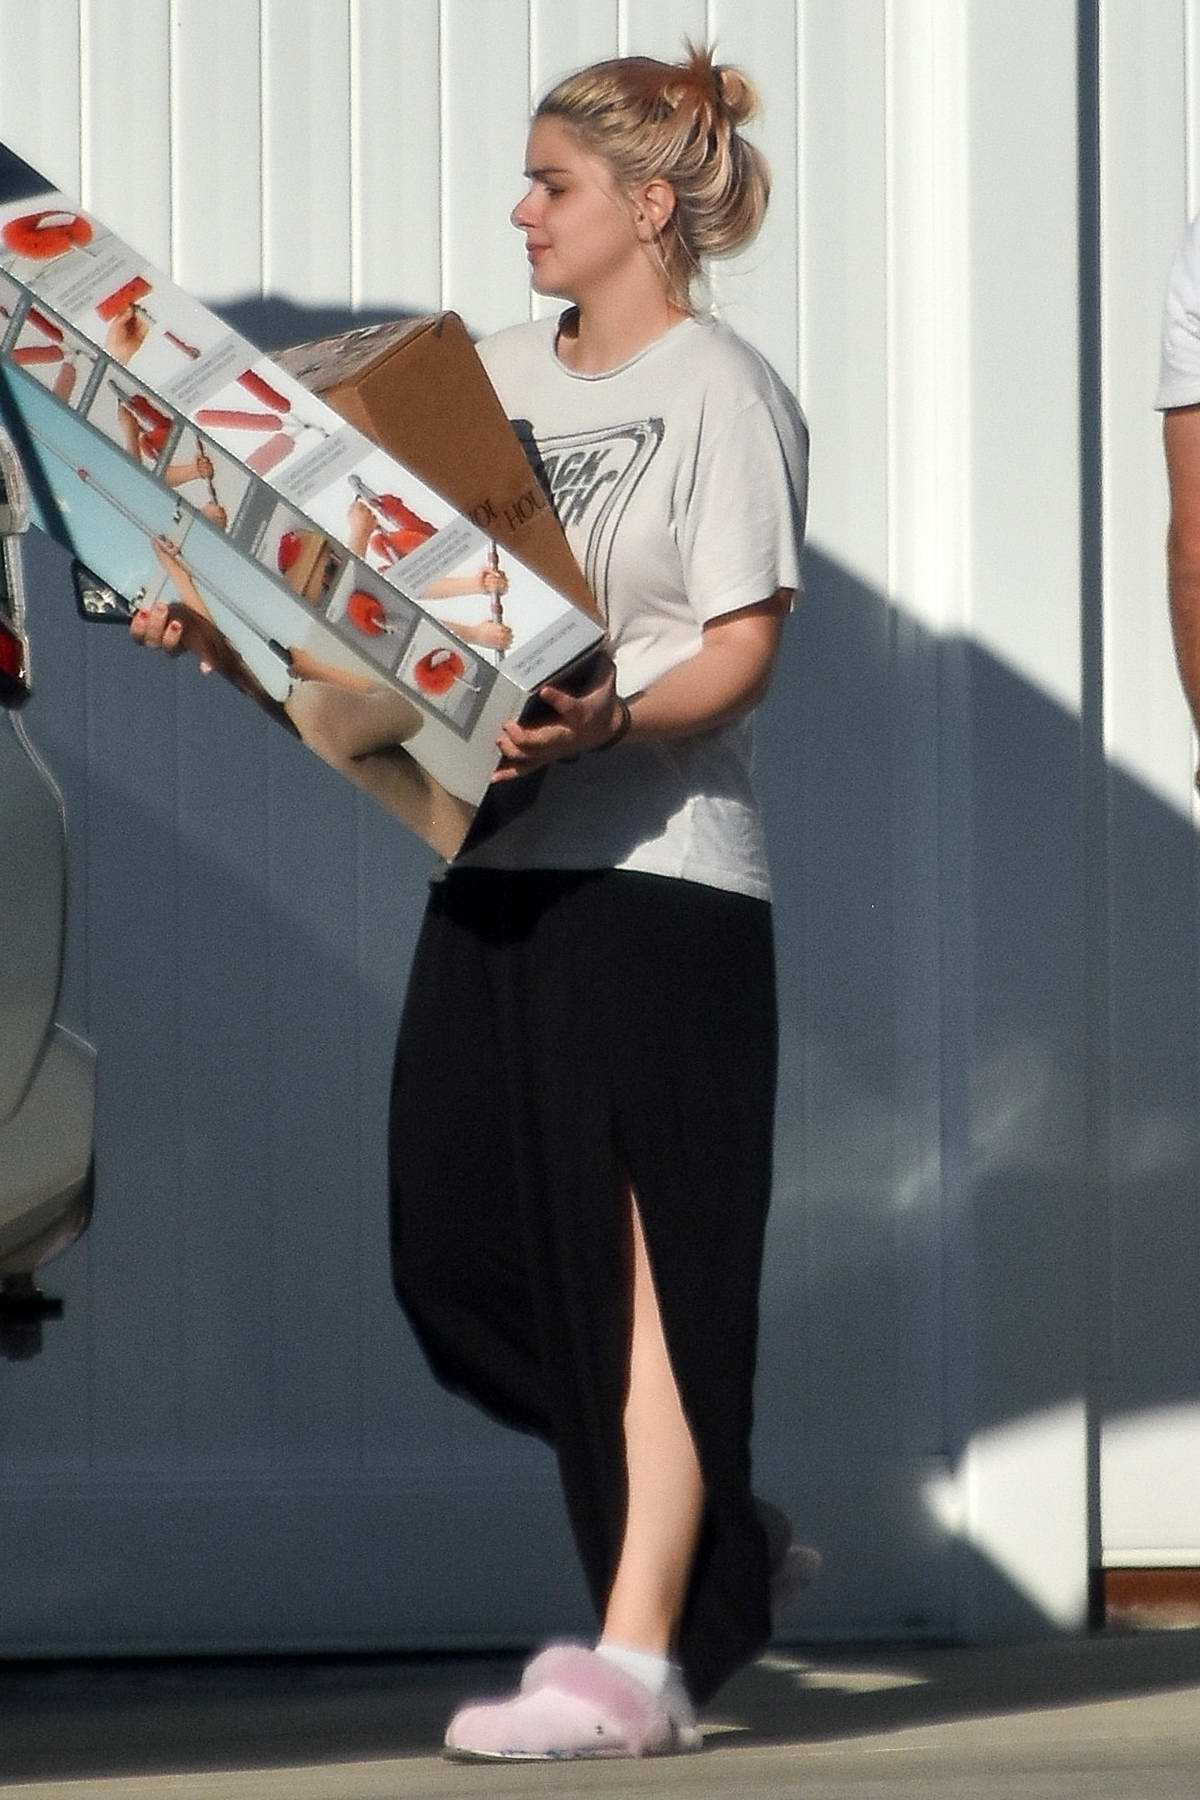 Ariel Winter and Luke Benward seen moving out of their old house in Los Angeles